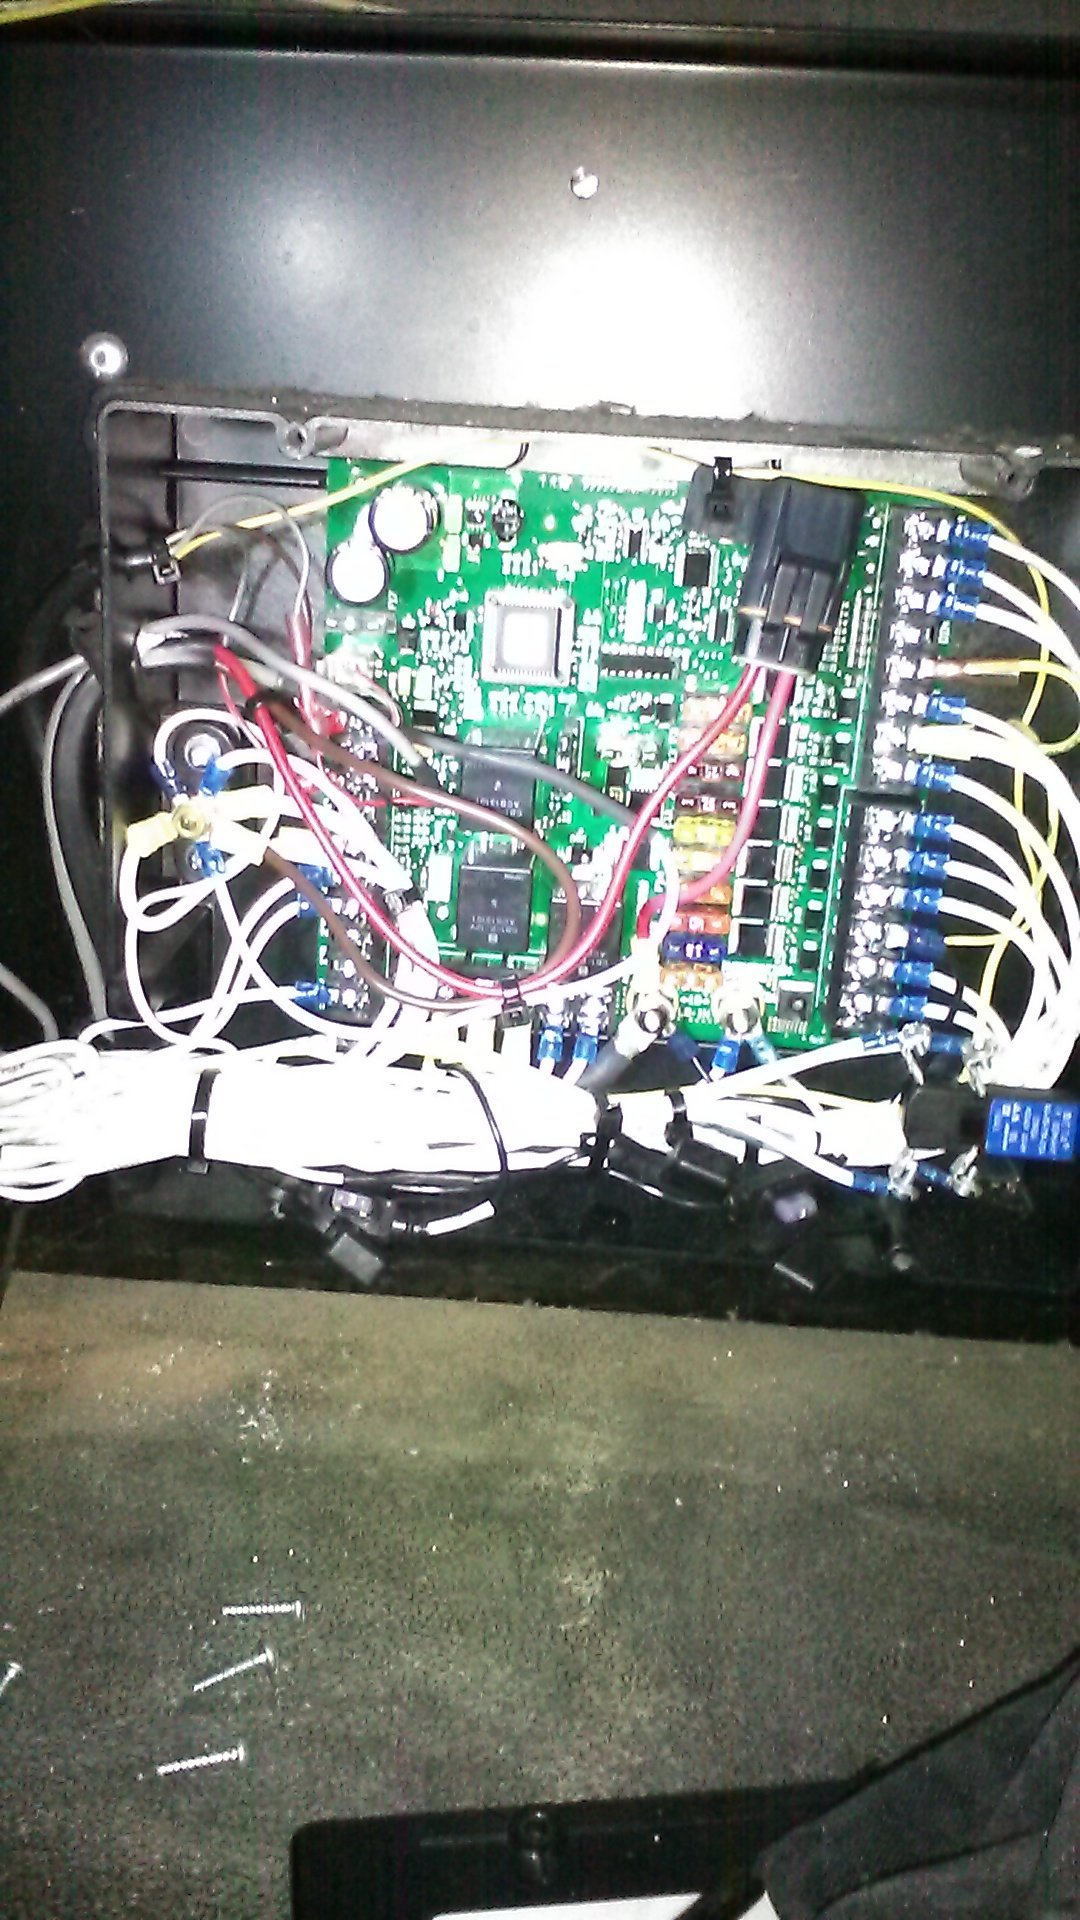 1485098220193 1949692882 i'm trying to figure out why my hmi for my tripac wont light up tri pac apu fuse box and diagram at nearapp.co